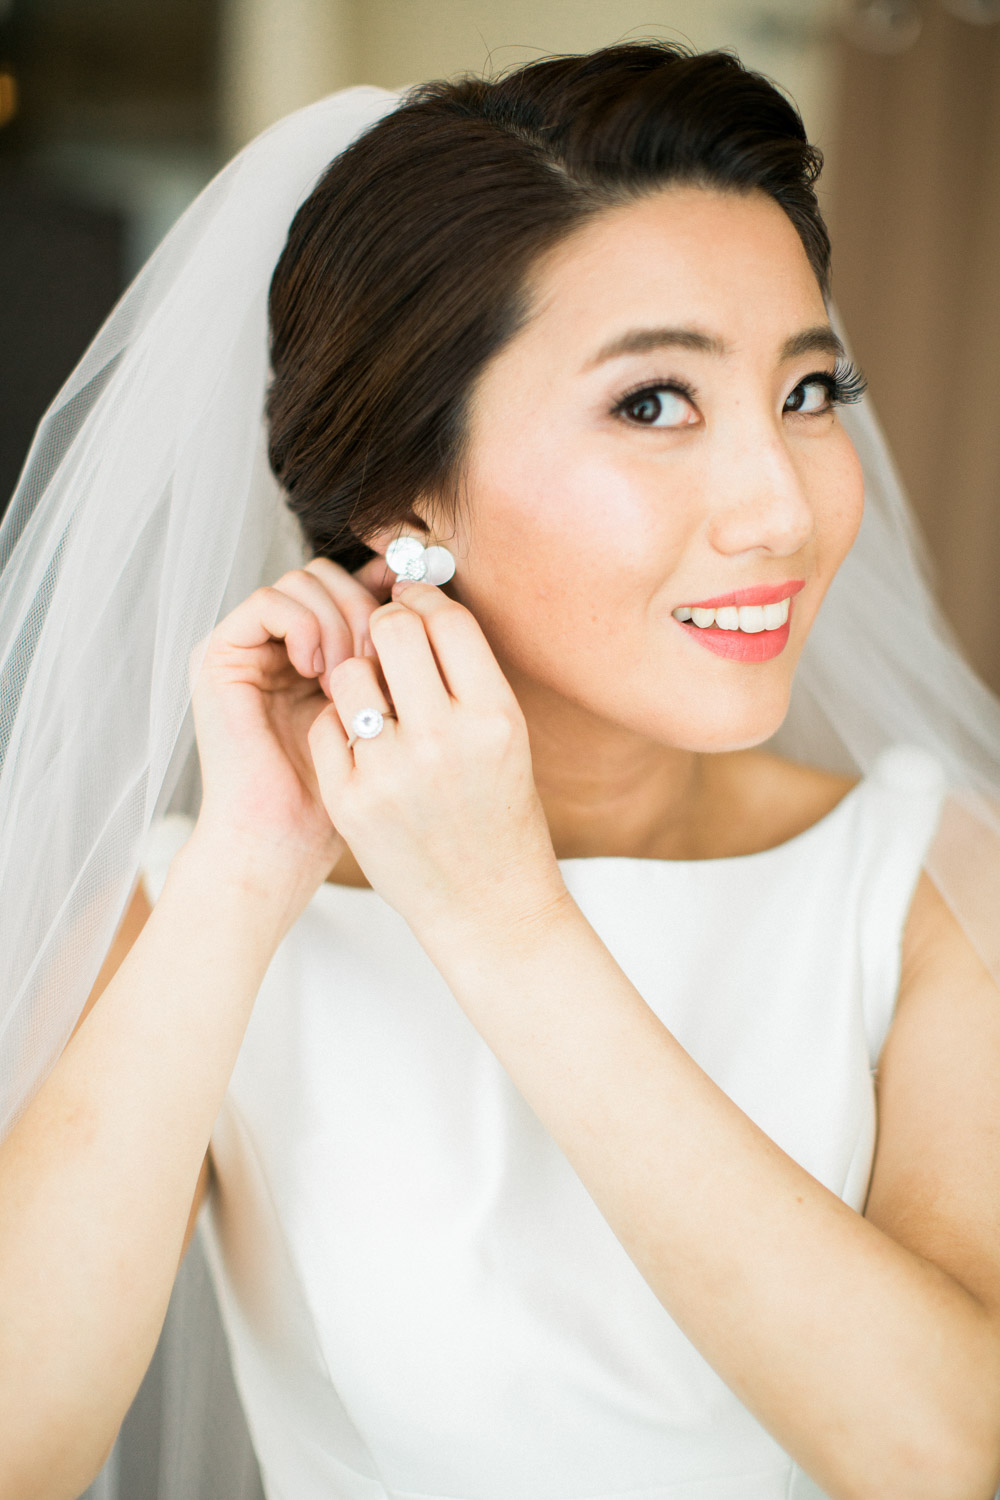 bride puts her earrings in on her wedding day